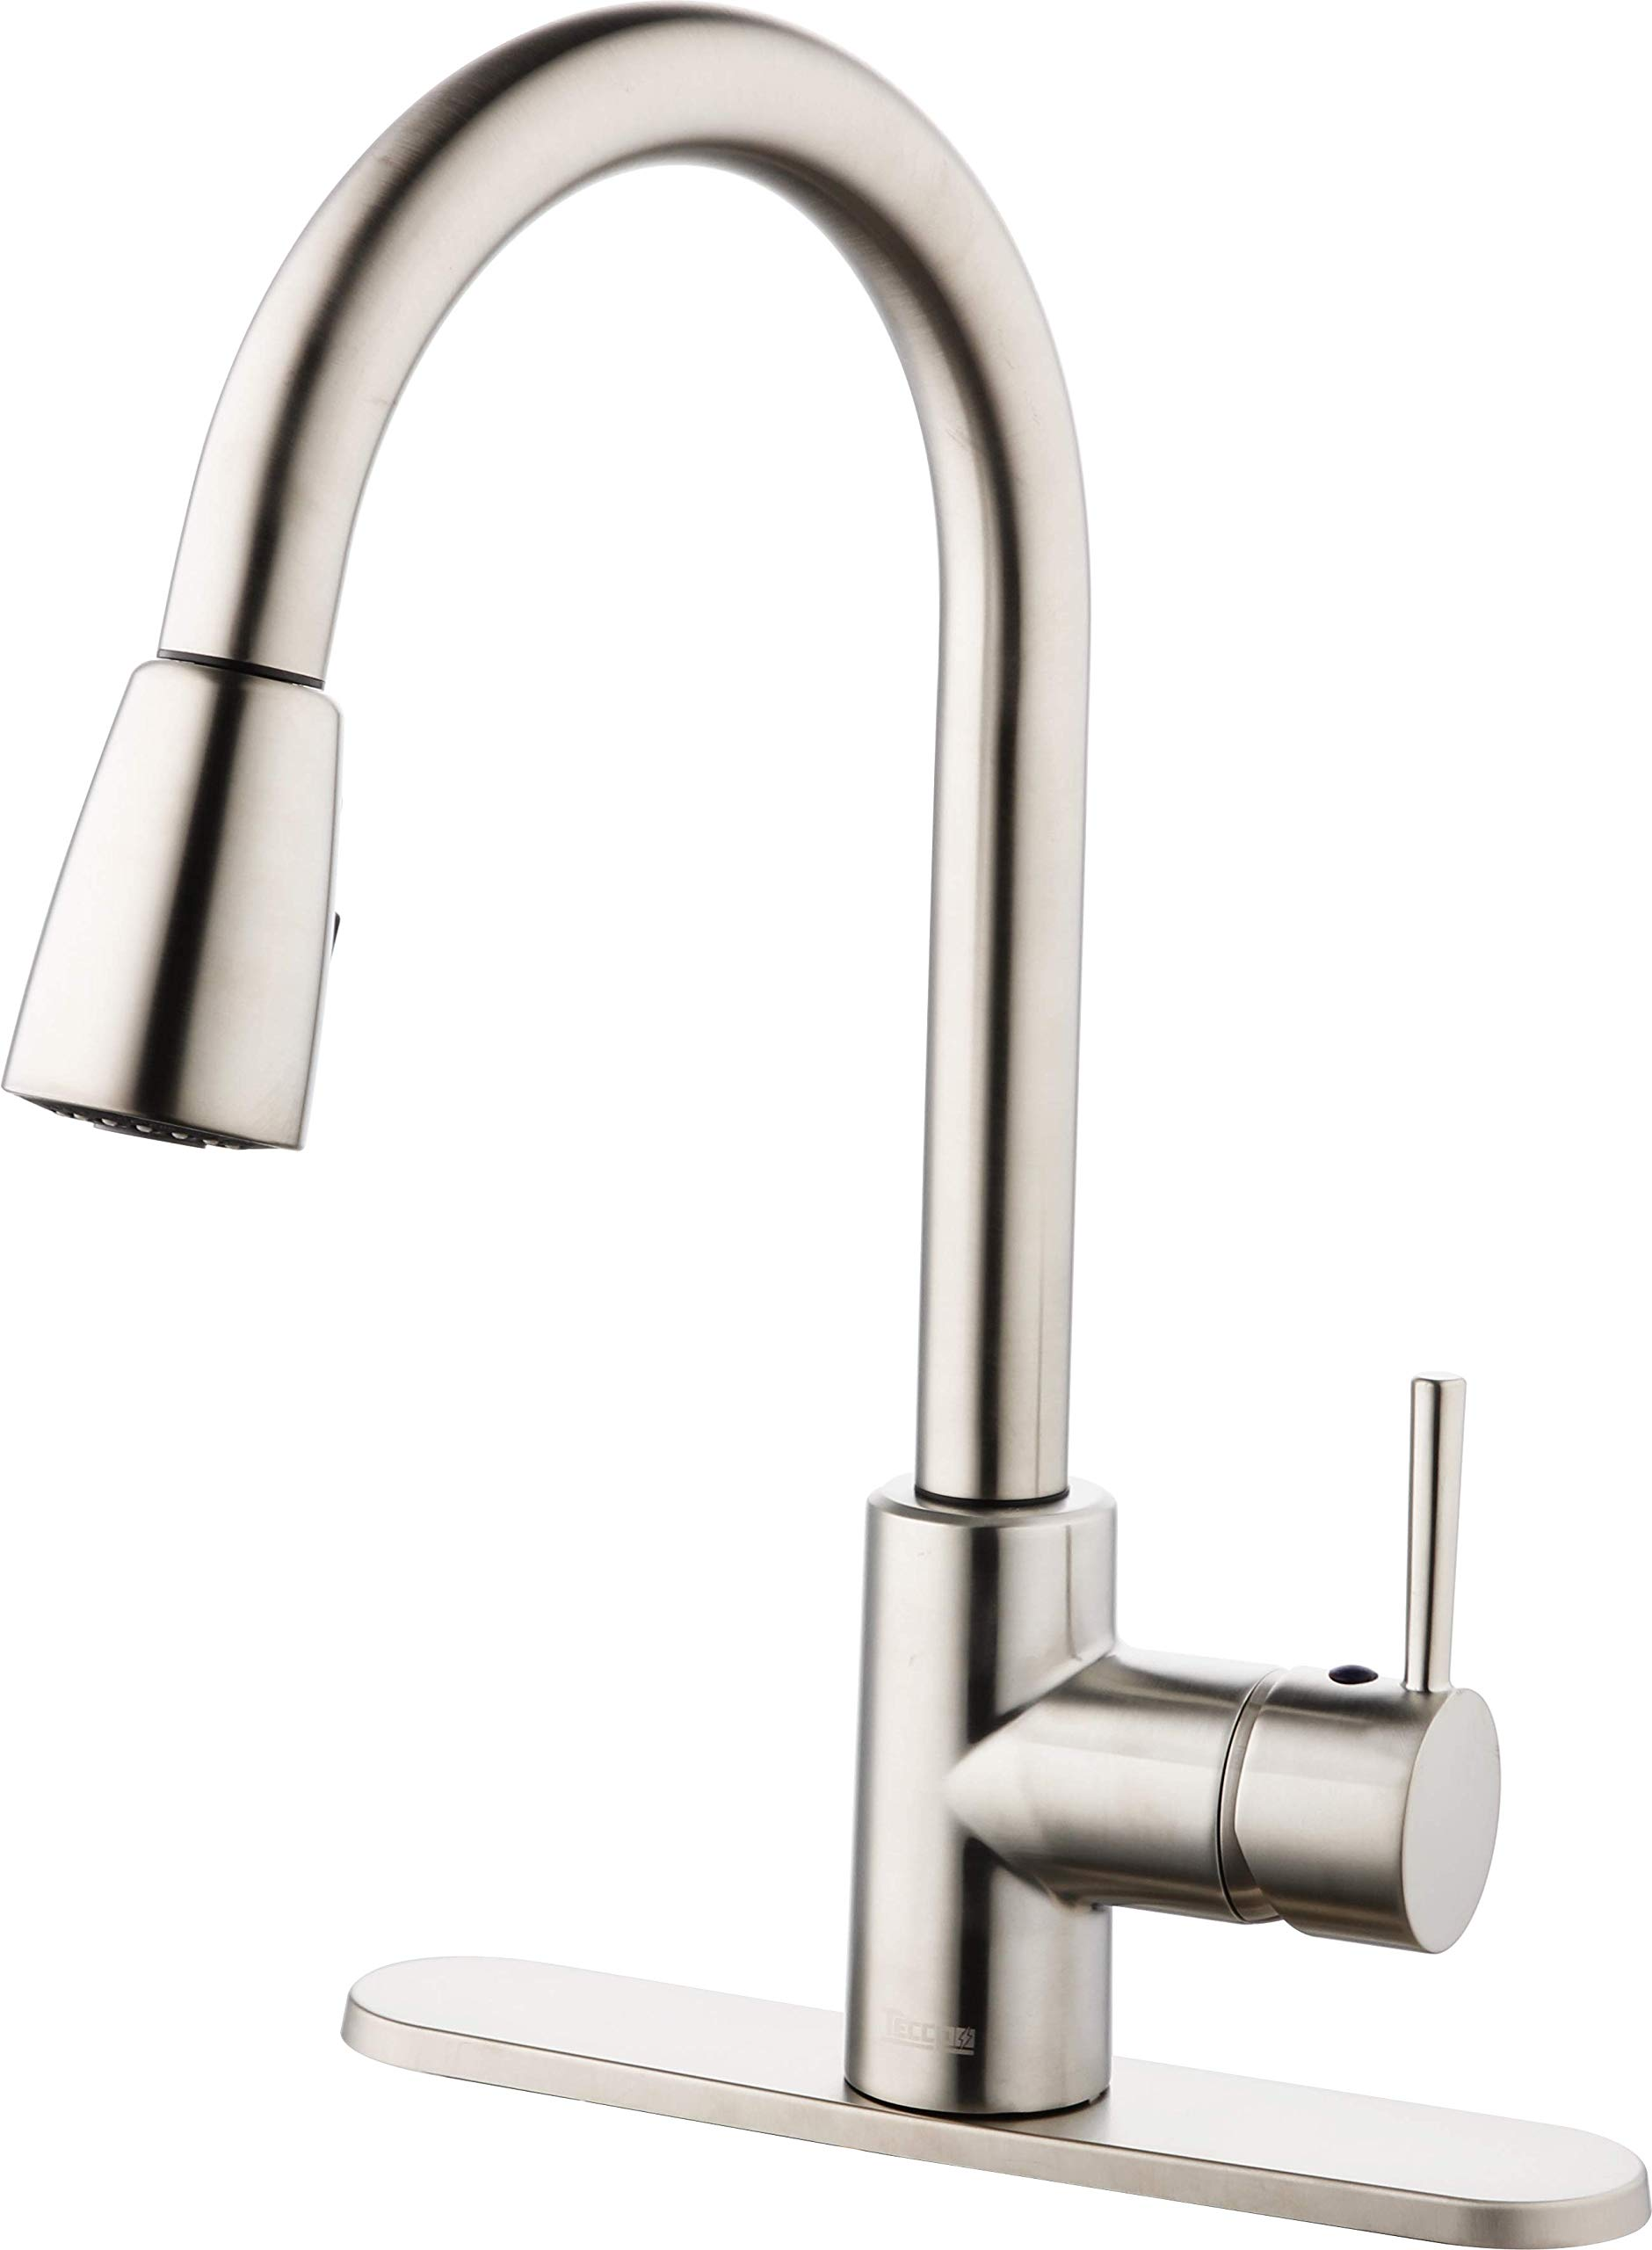 TECCPO Single Handle Brushed Nickel Pull out Kitchen Faucet, Stainless Steel Kitchen Sink Faucets with Pull down Sprayer